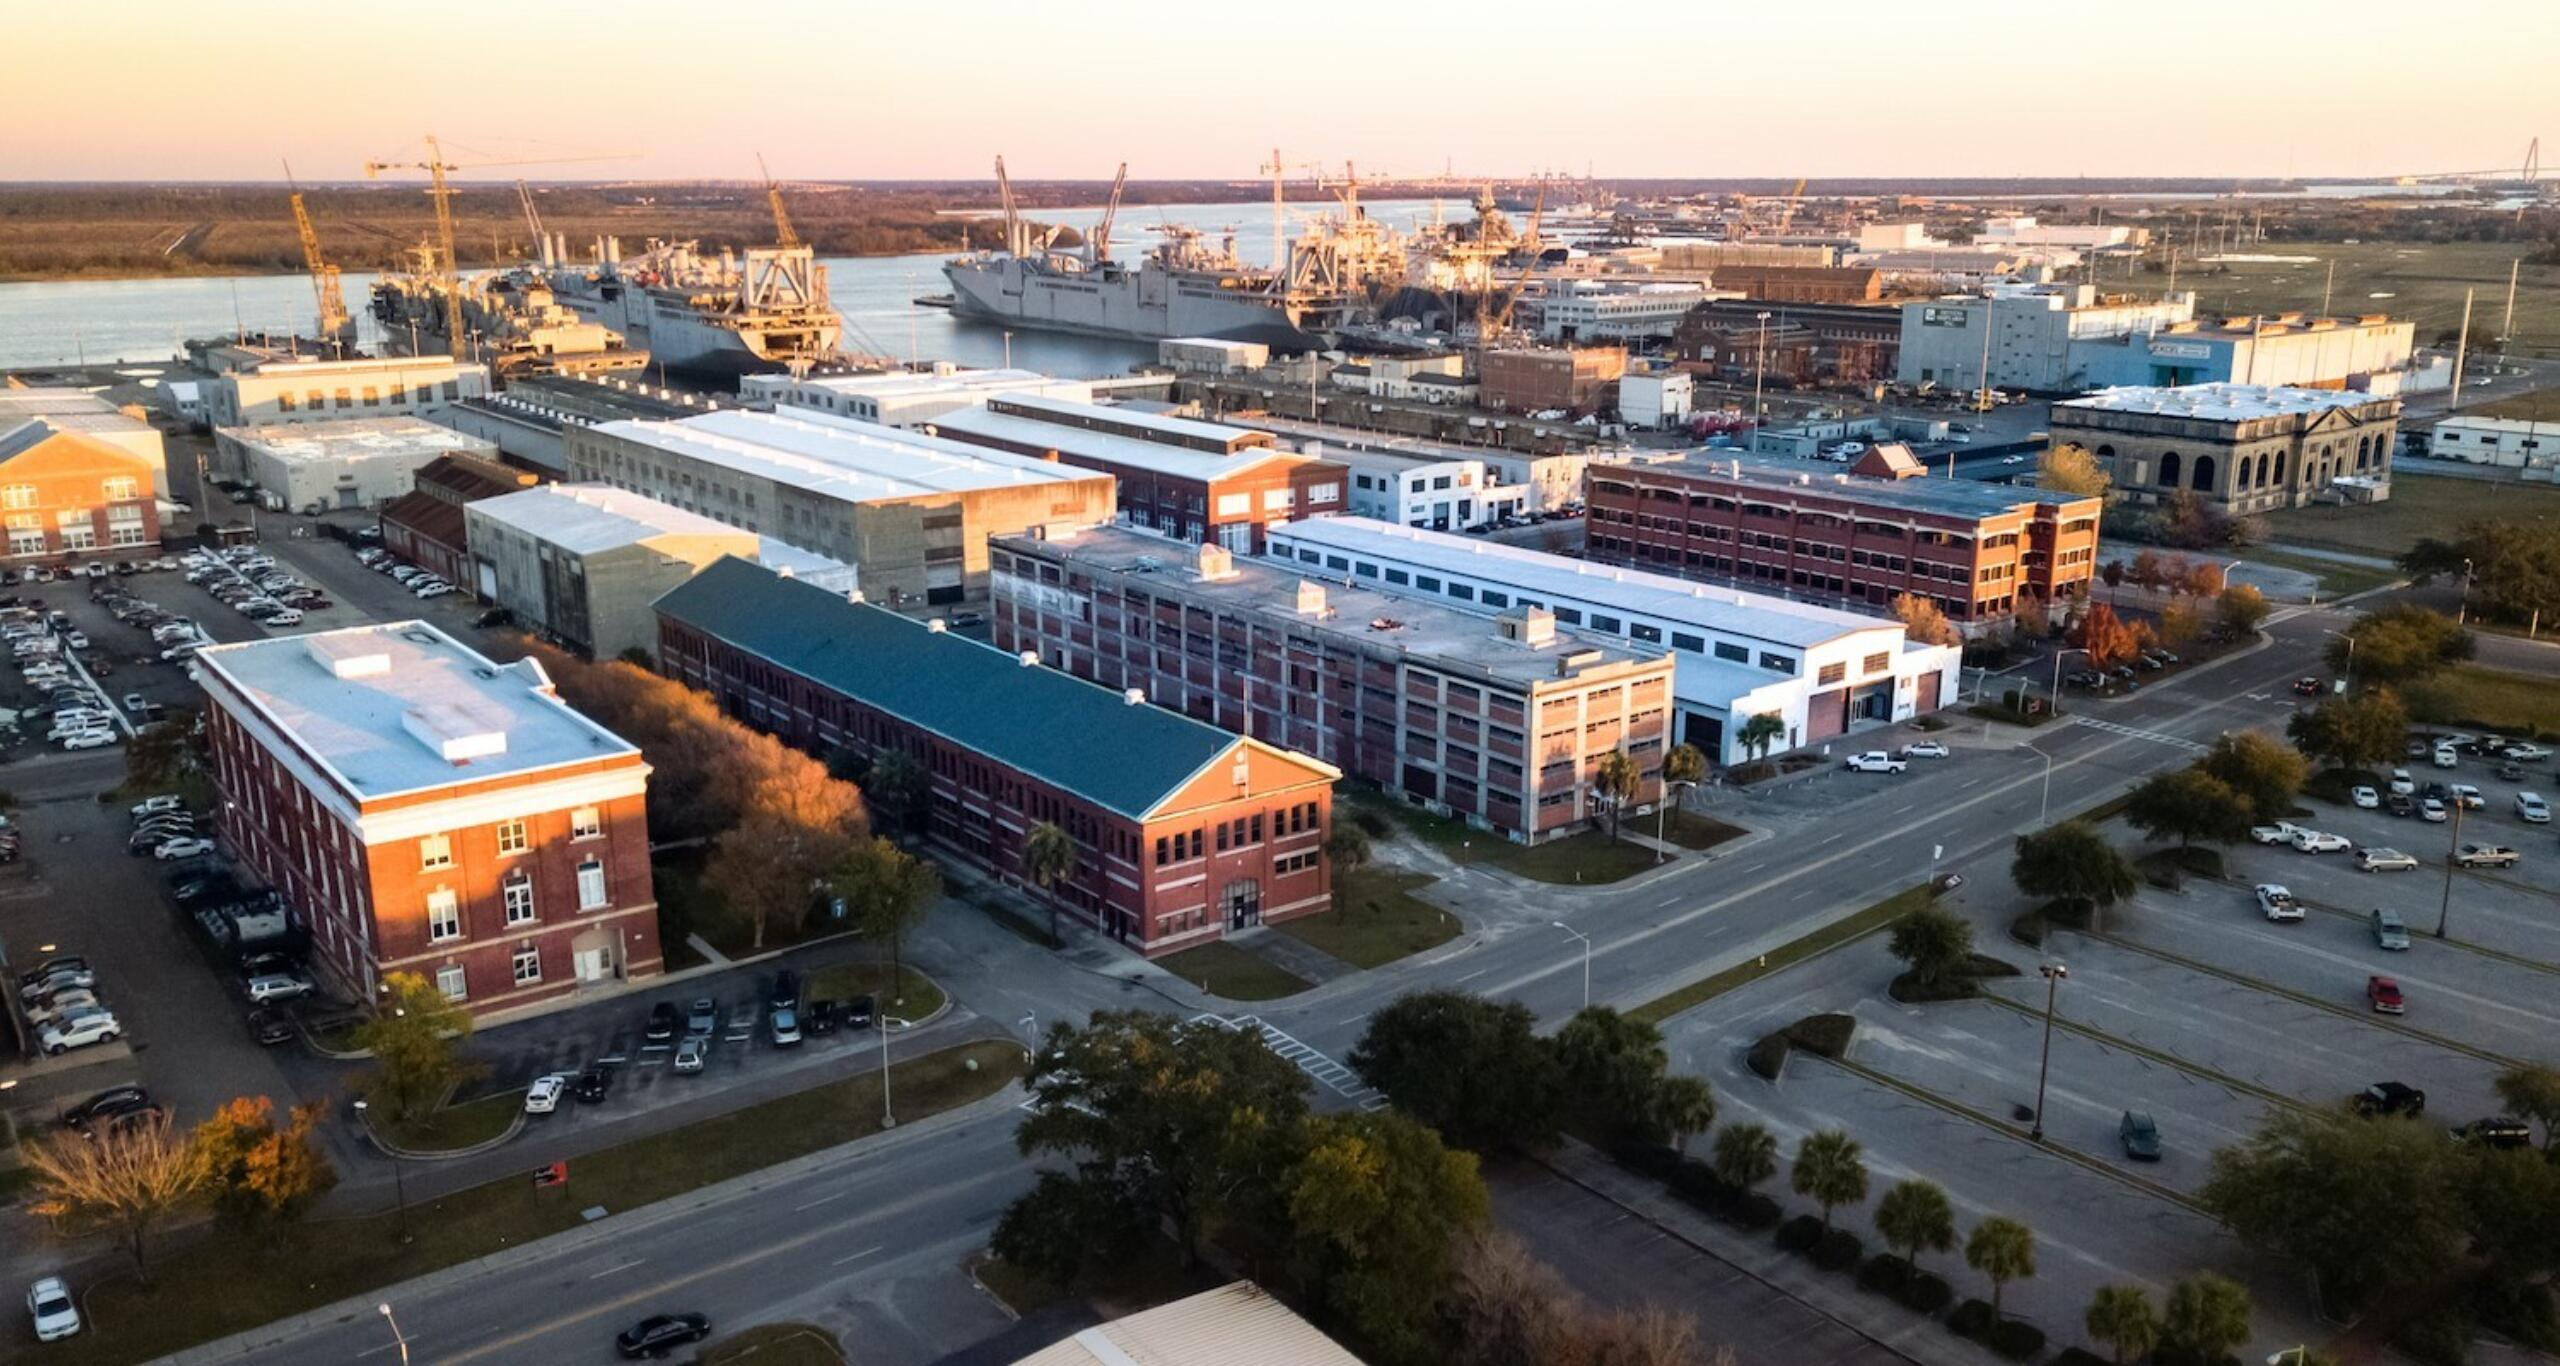 North charleston navy yard aerial